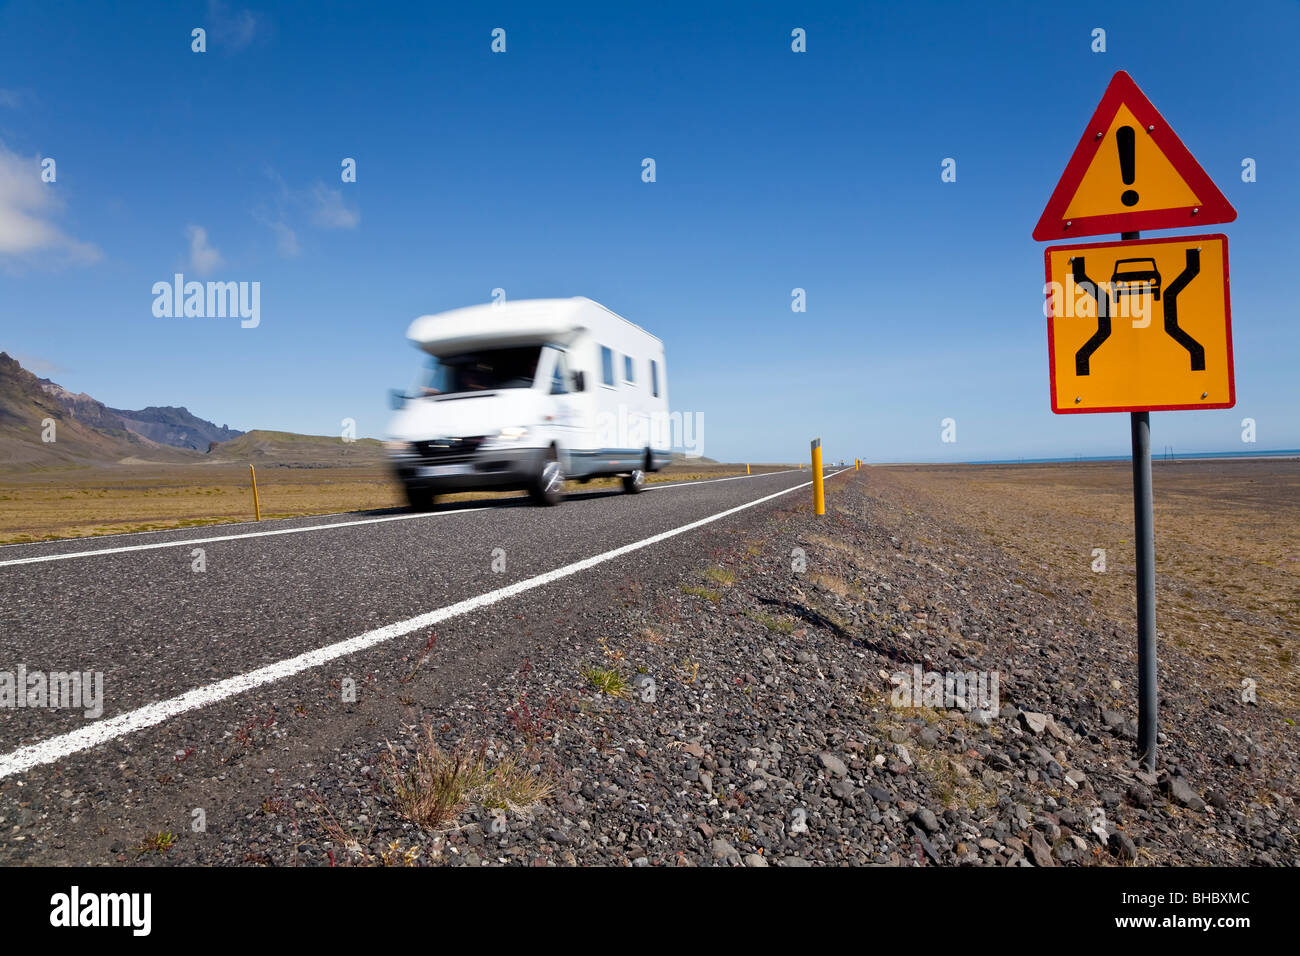 Motion blurred photograph motor home or camper van driving on an open road with danger sign - Stock Image